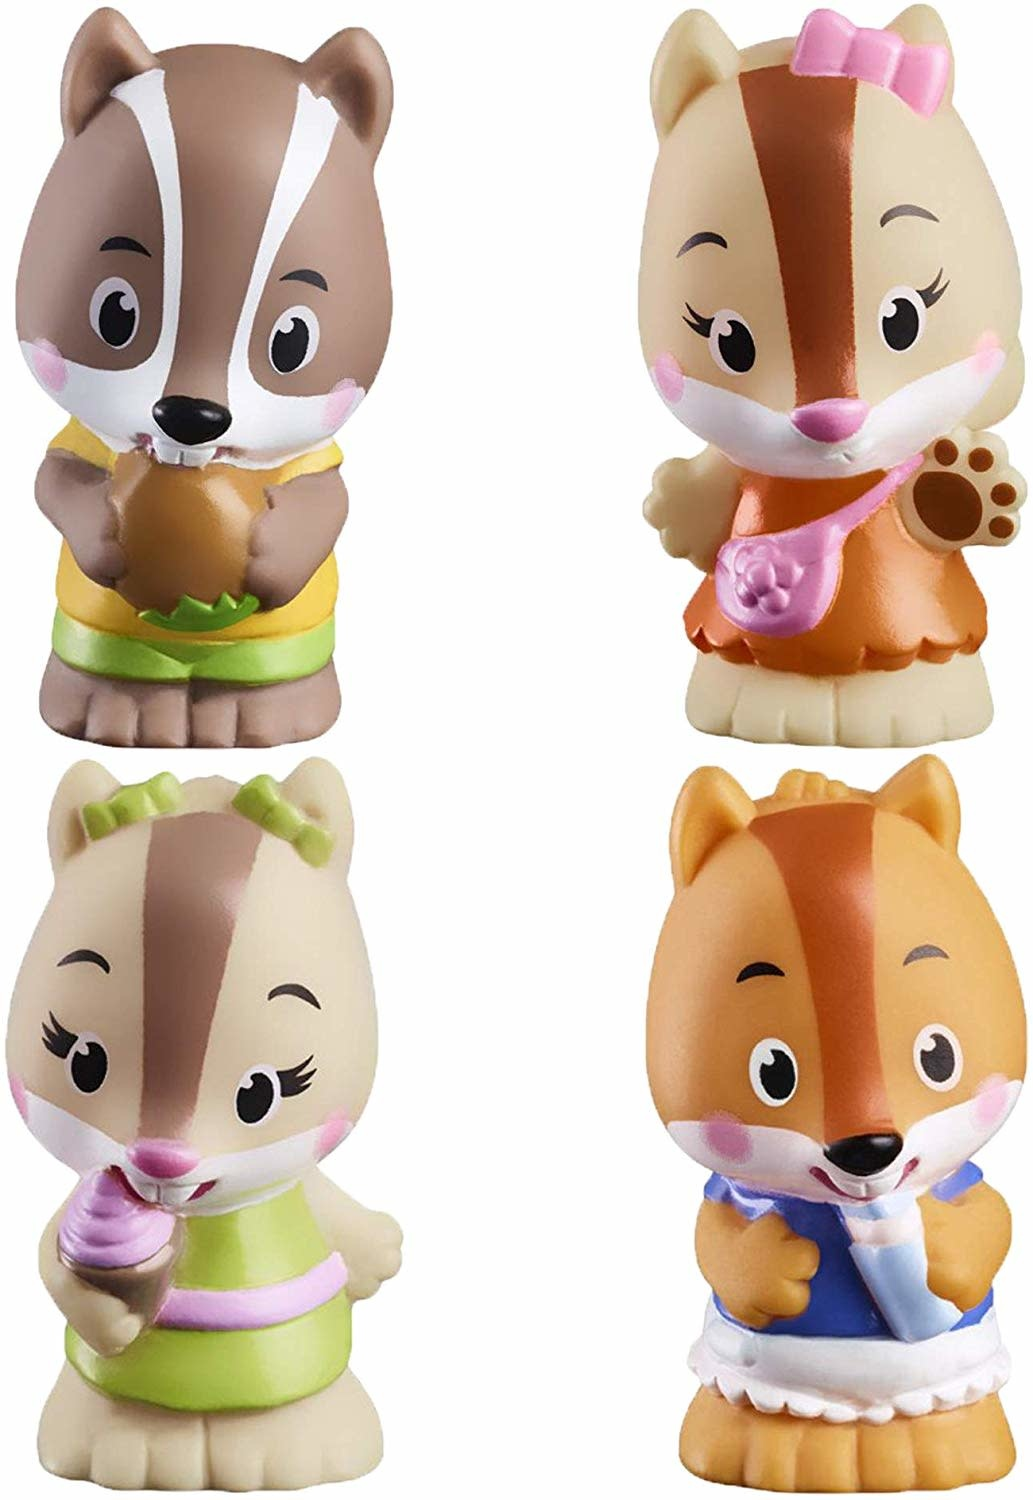 Timber Tots Nutnut Family by Fat Brain Toys